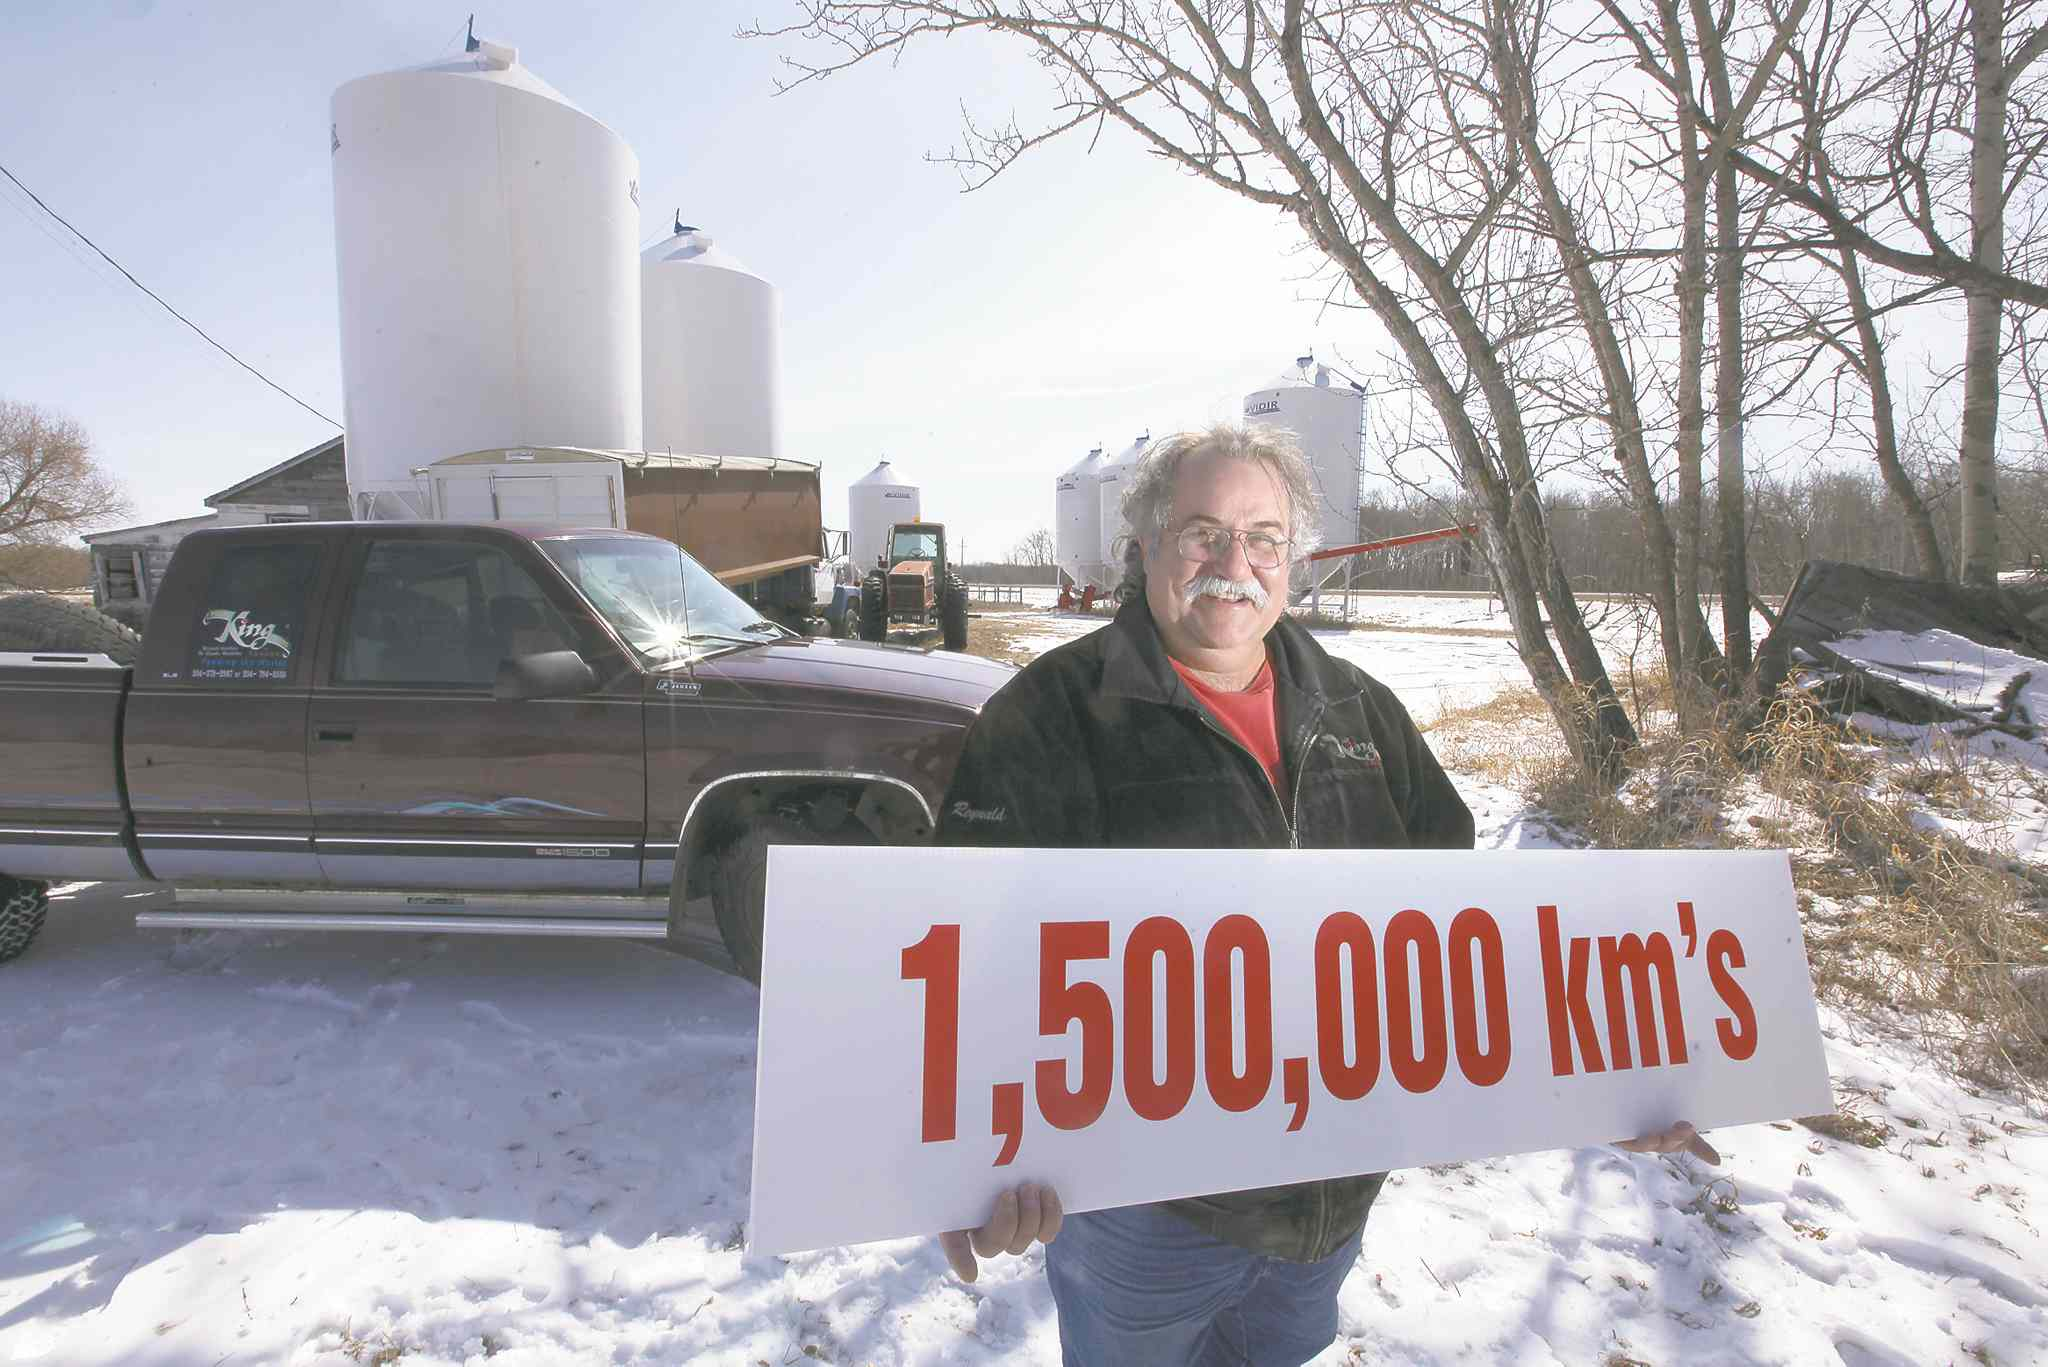 Reynald Gauthier, a millet farmer from St. Claude, has driven his 1997 GMC pickup truck for 1.5 million kms and hopes to drive it a few thousand more.